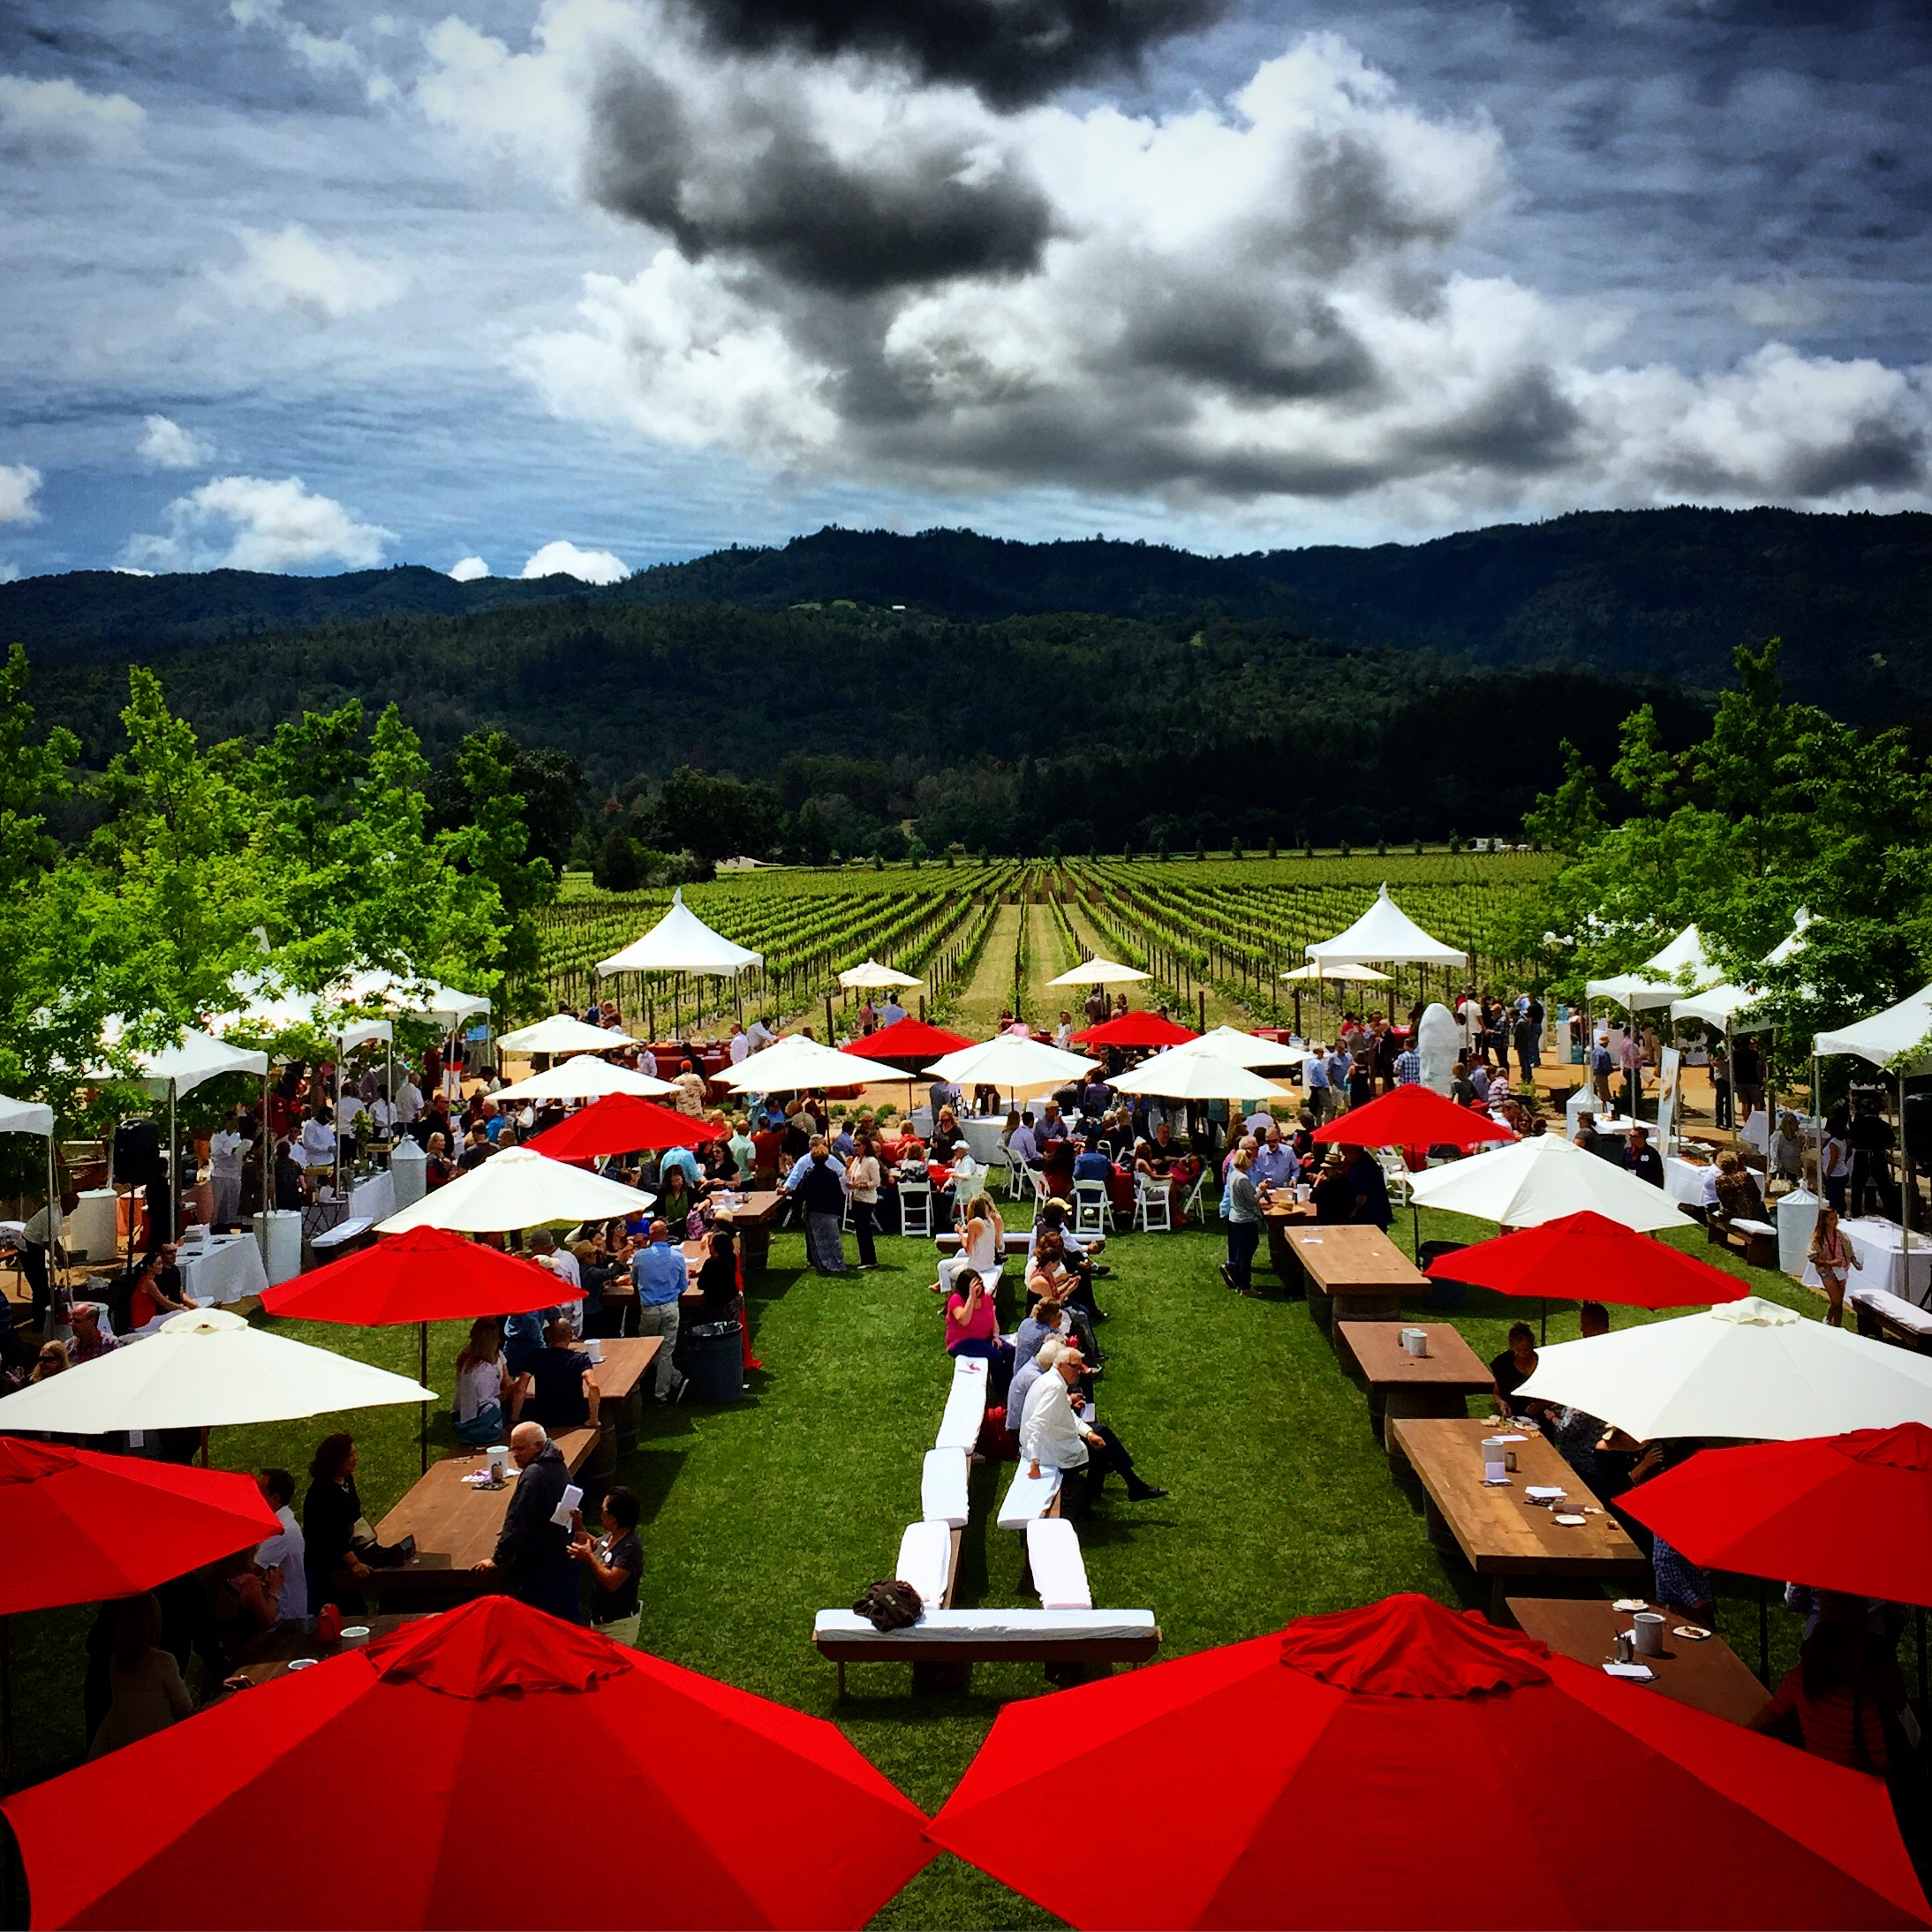 Several hundred people participated in the annual Hall Winery Cab Cookoff in Napa. Such a fun event under sunny skies.